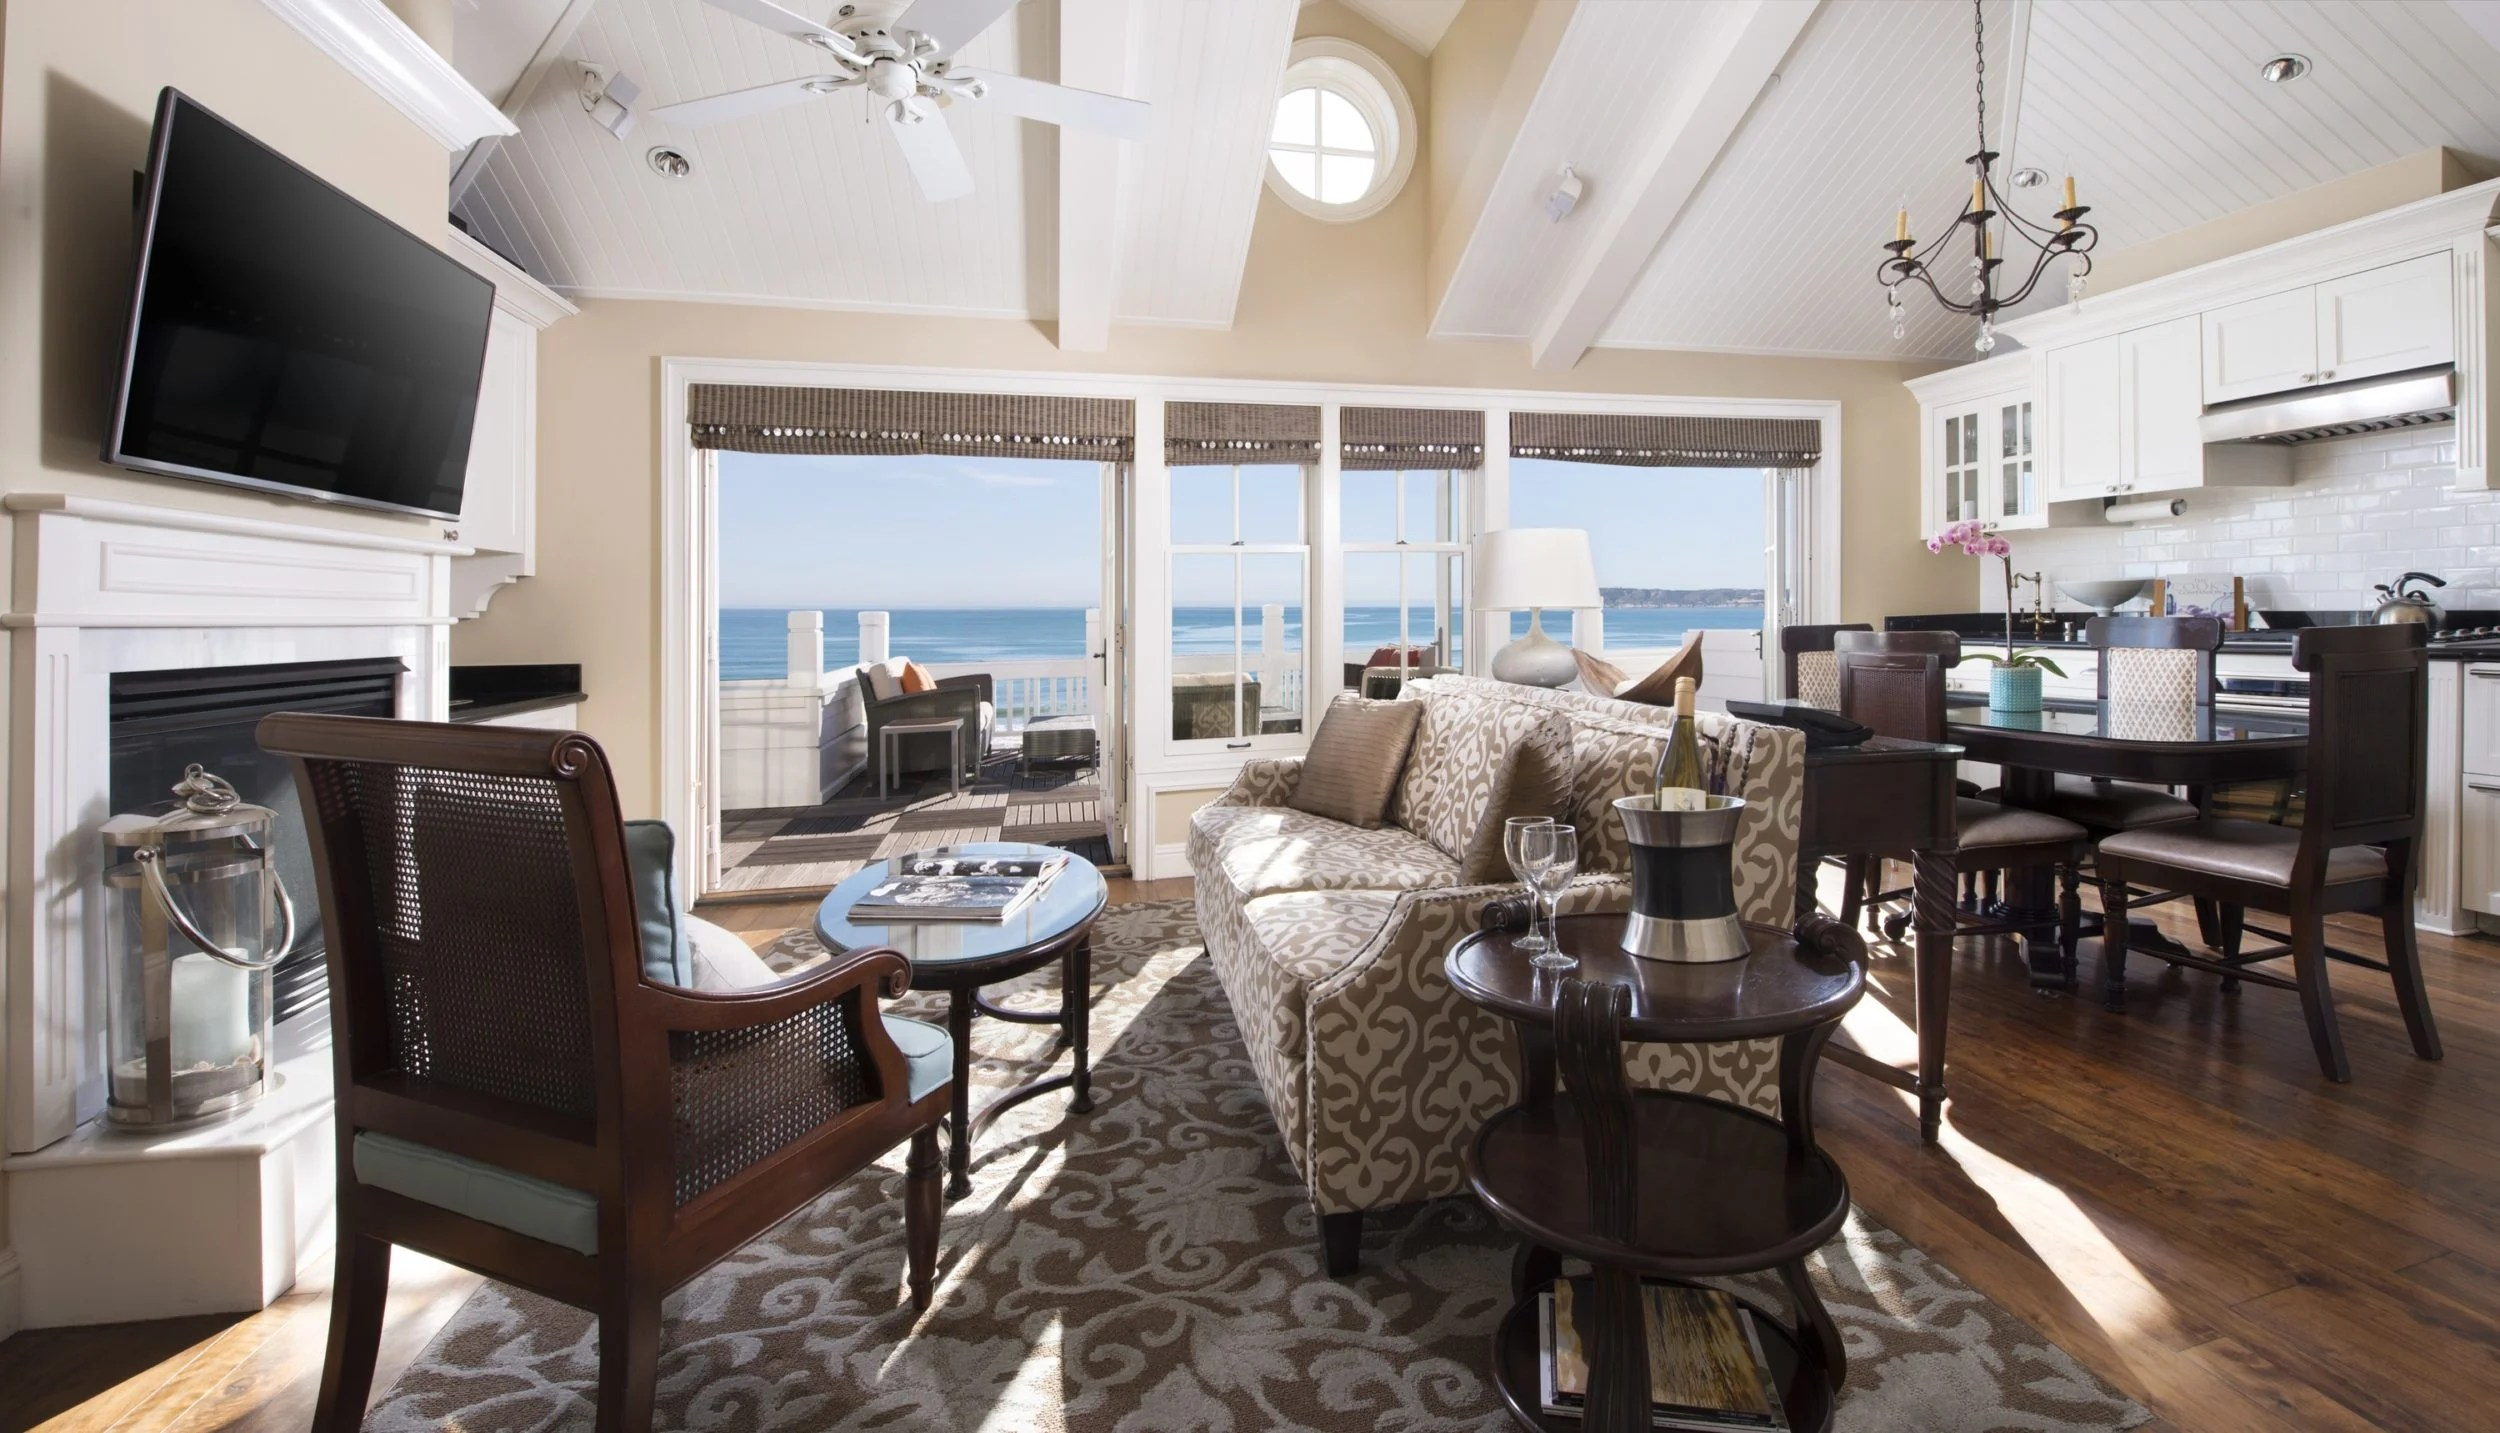 Upscale Ceiling Fan 13 Best Luxury San Diego Hotels Beachfront Family Downtown